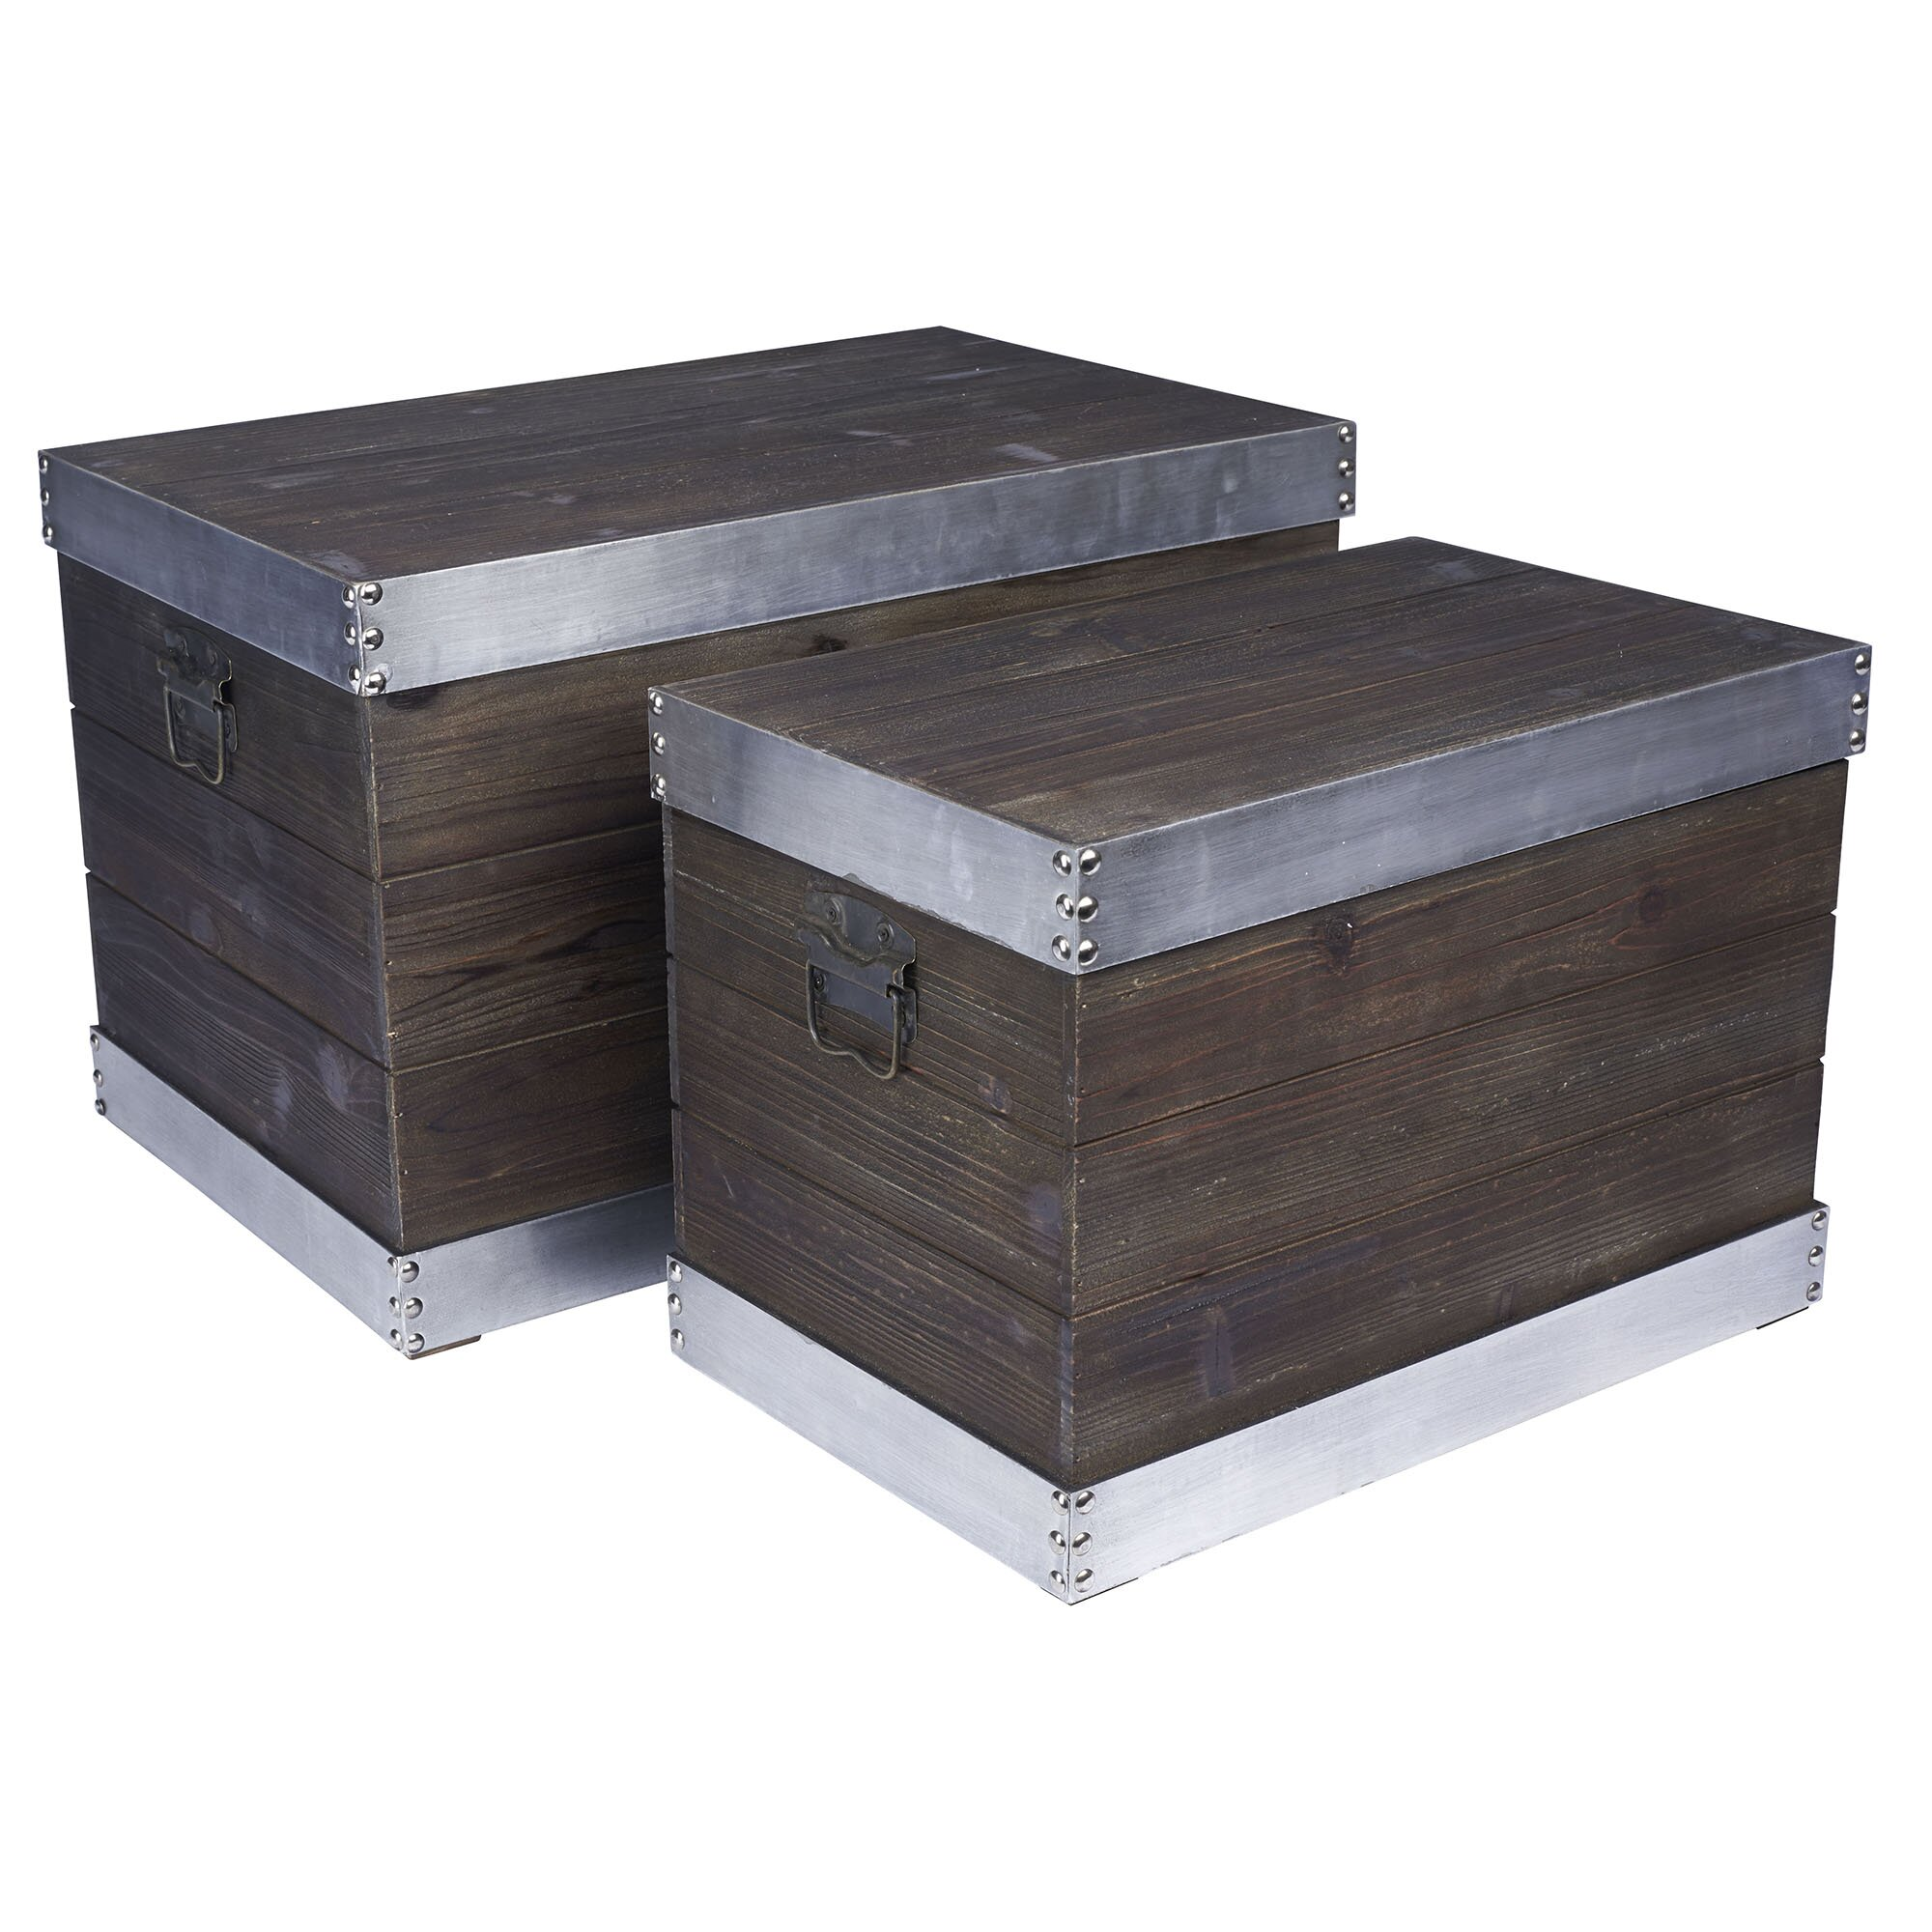 Decorative Boxes Storage: Household Essentials 2 Piece Decorative Storage Box Set